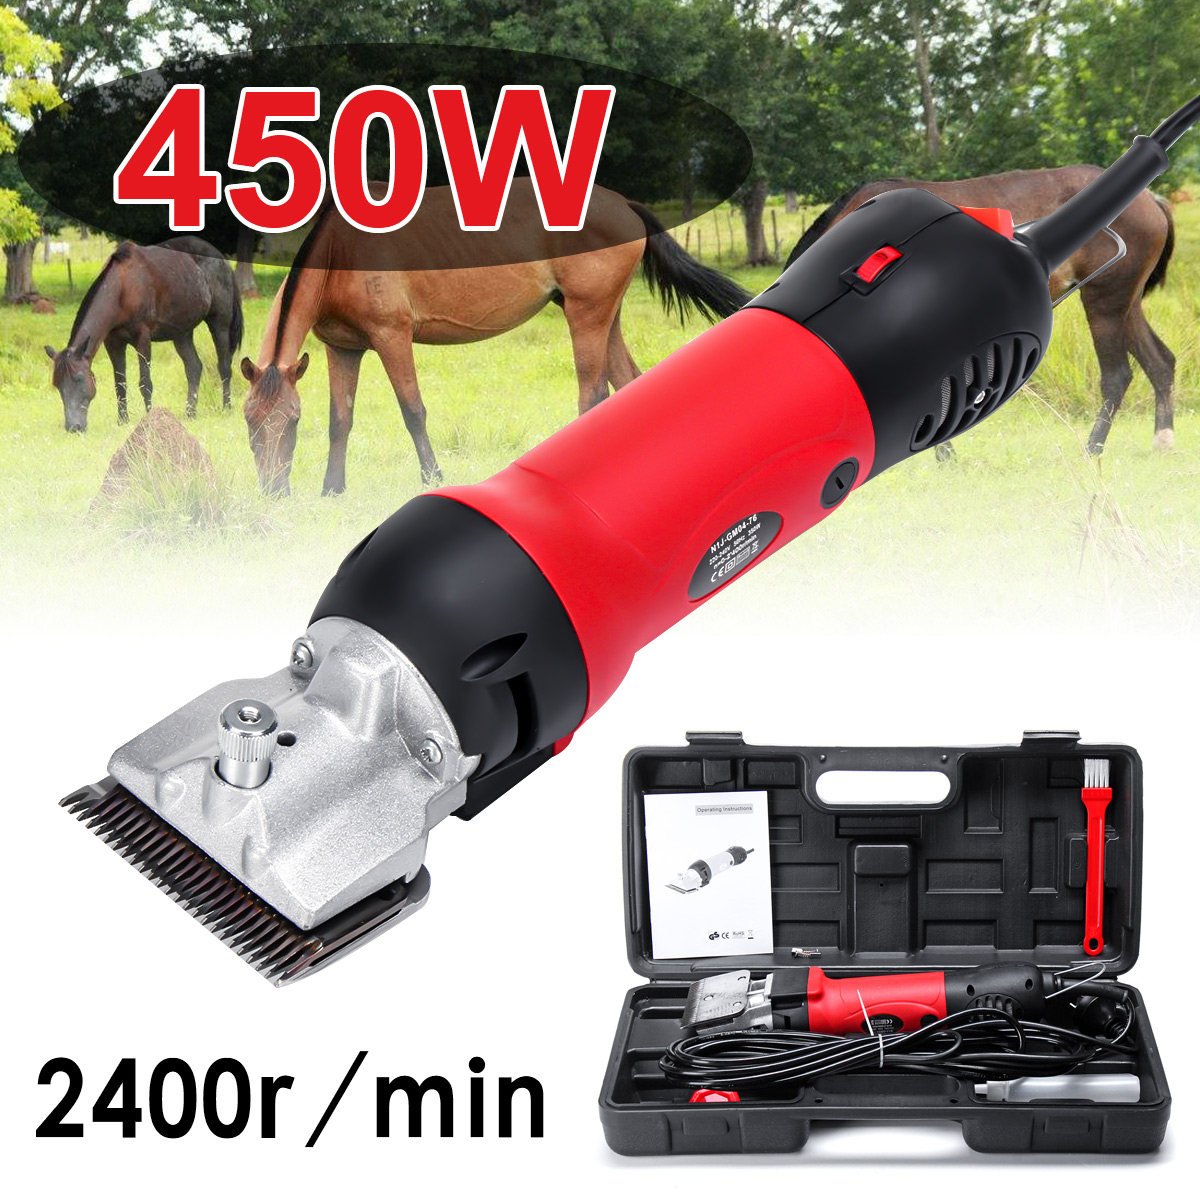 110-240V 450W 2400r/min Professional Electric Animal Horse Camel Dog Sheep Shear Clipper Pet Hair Trimmer Hair Shearing Machine110-240V 450W 2400r/min Professional Electric Animal Horse Camel Dog Sheep Shear Clipper Pet Hair Trimmer Hair Shearing Machine